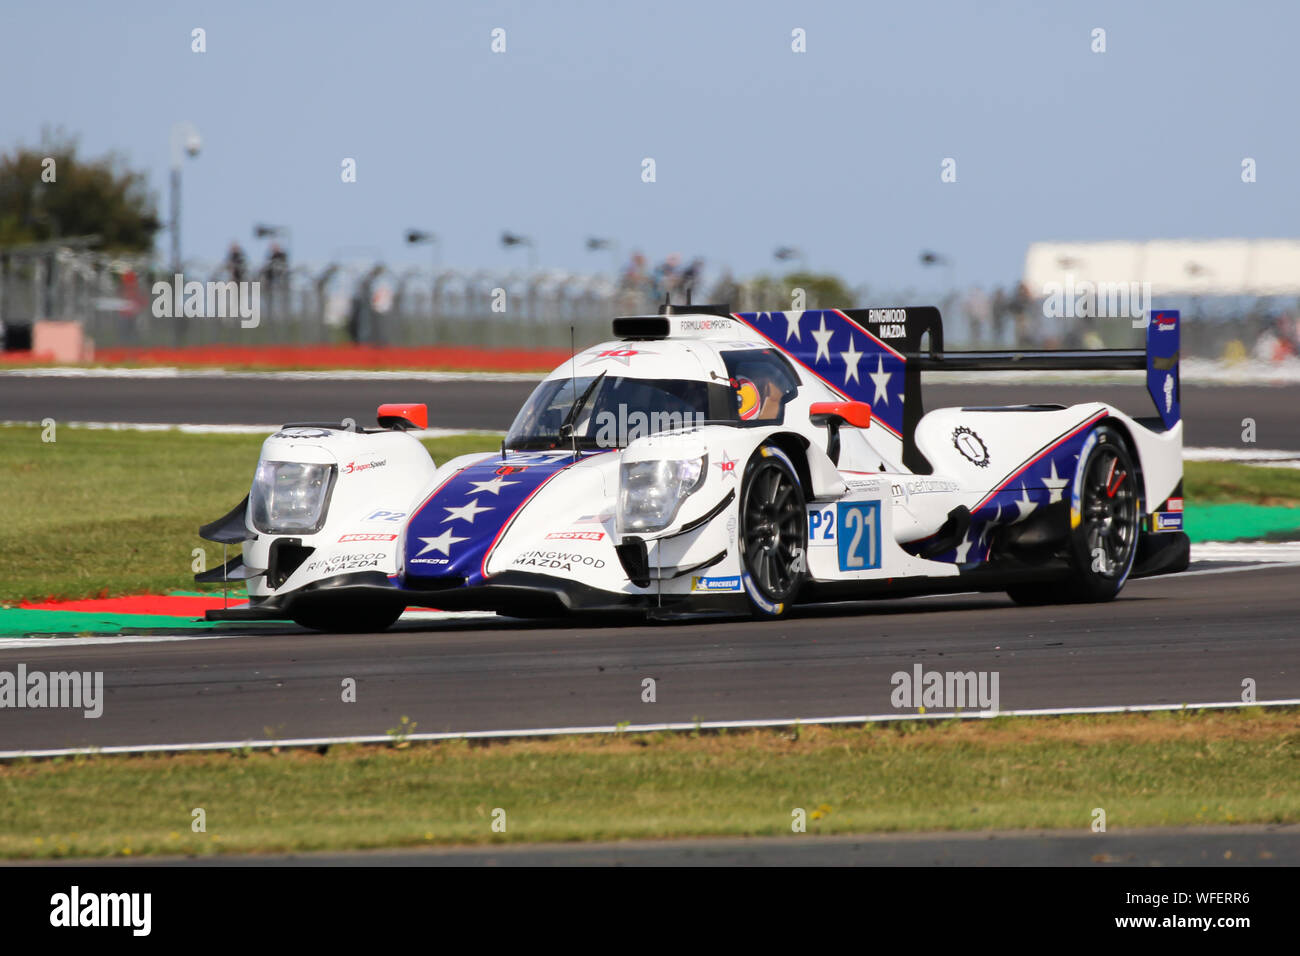 The #21 Dragonspeed Oreca 07-Gibson of Henrik Hedman, Ben Hanley and James Allen during qualifying for the European Le Mans Series at Silverstone Stock Photo